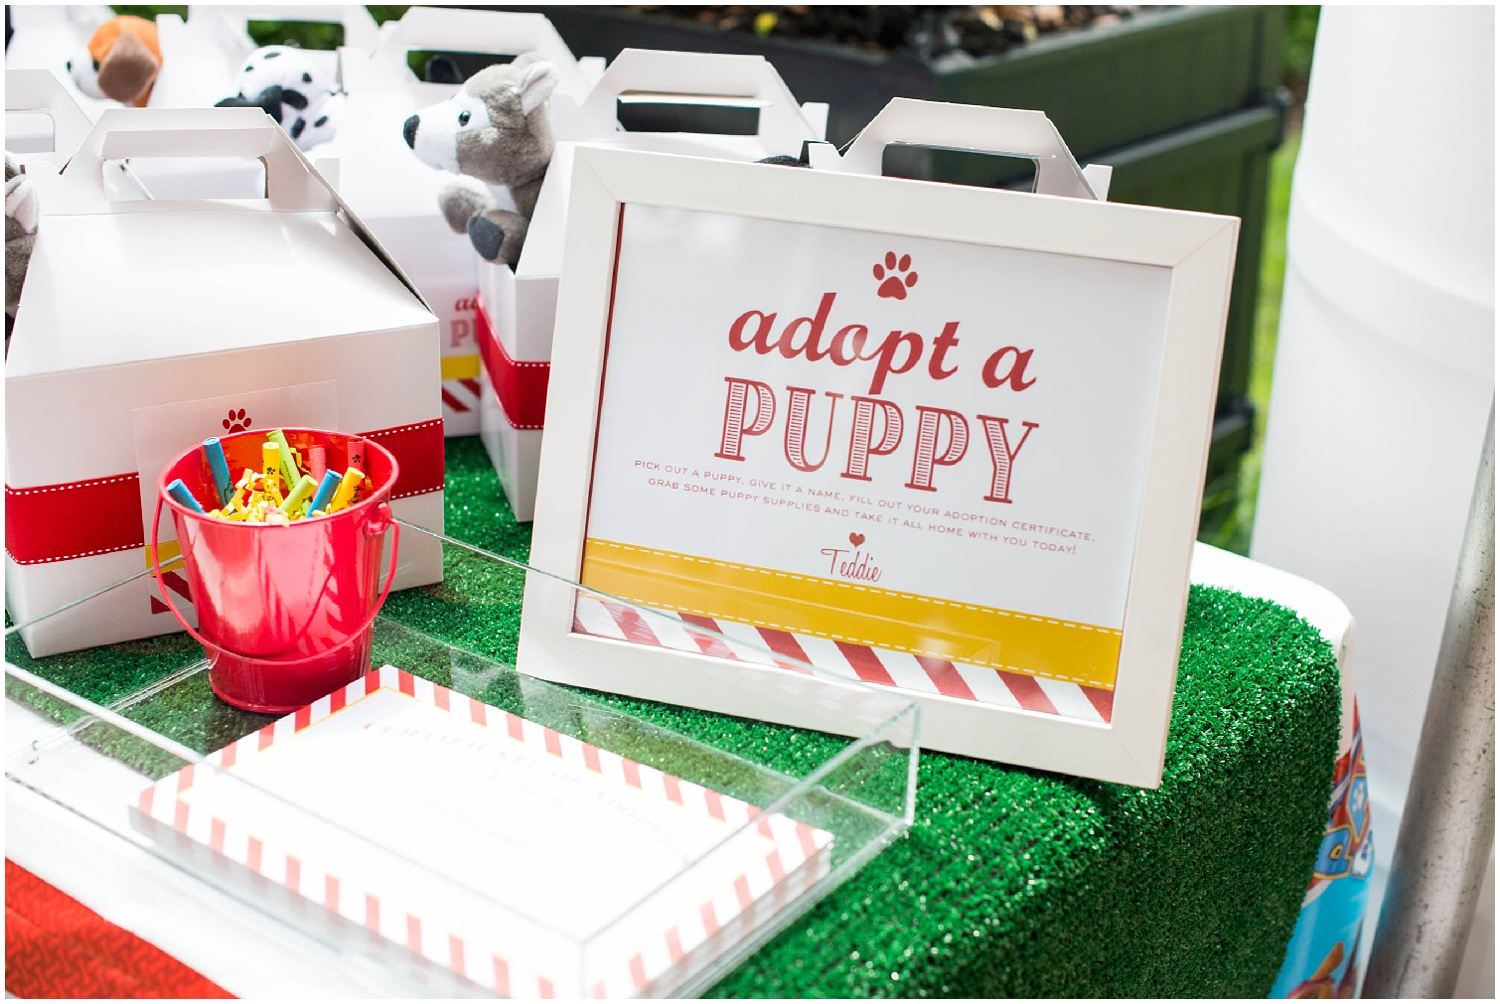 Puppy_themedchildrensparty_AustinTX_0117.jpg